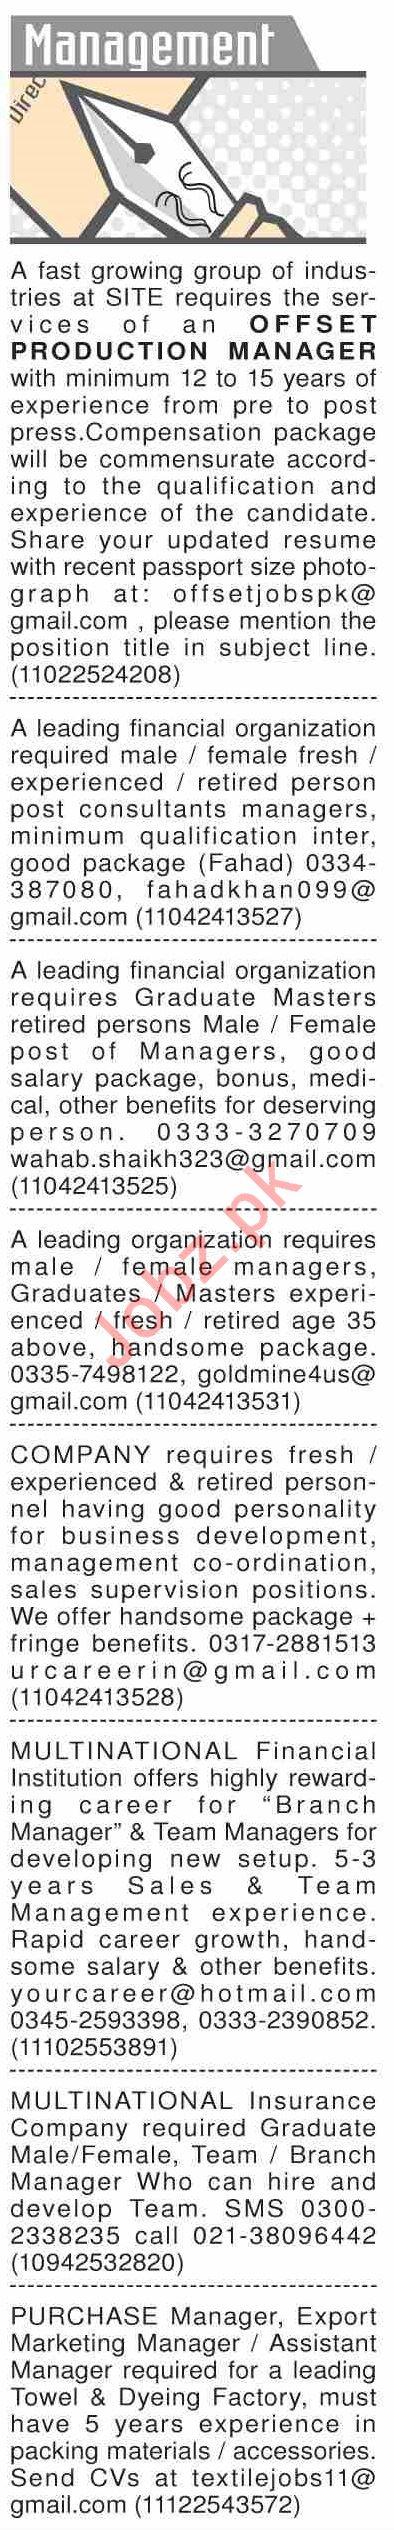 Dawn Sunday Classified Ads 14th July 2019 for Management